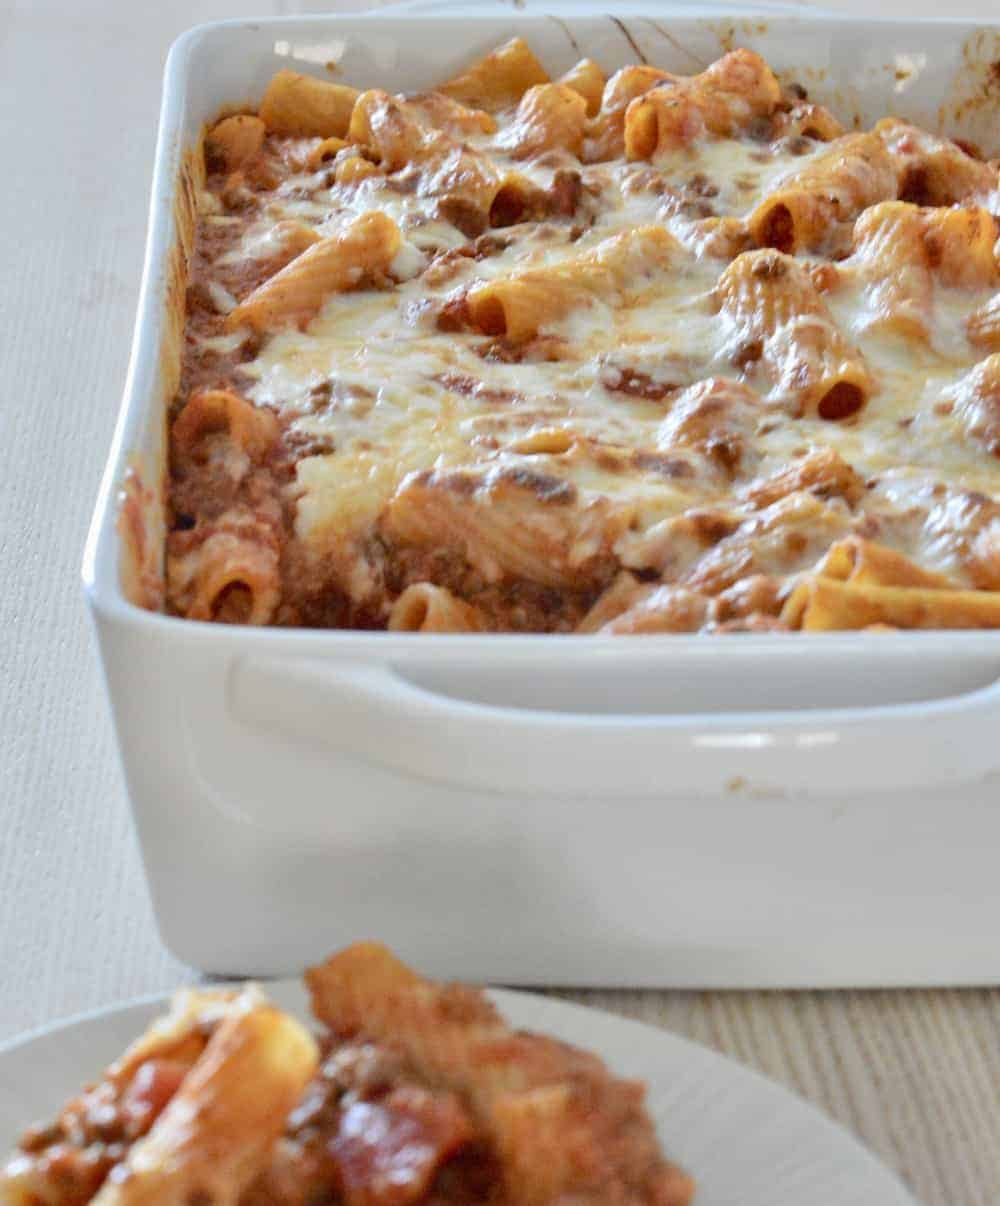 Baked Ziti with meat sauce in a white baking dish.